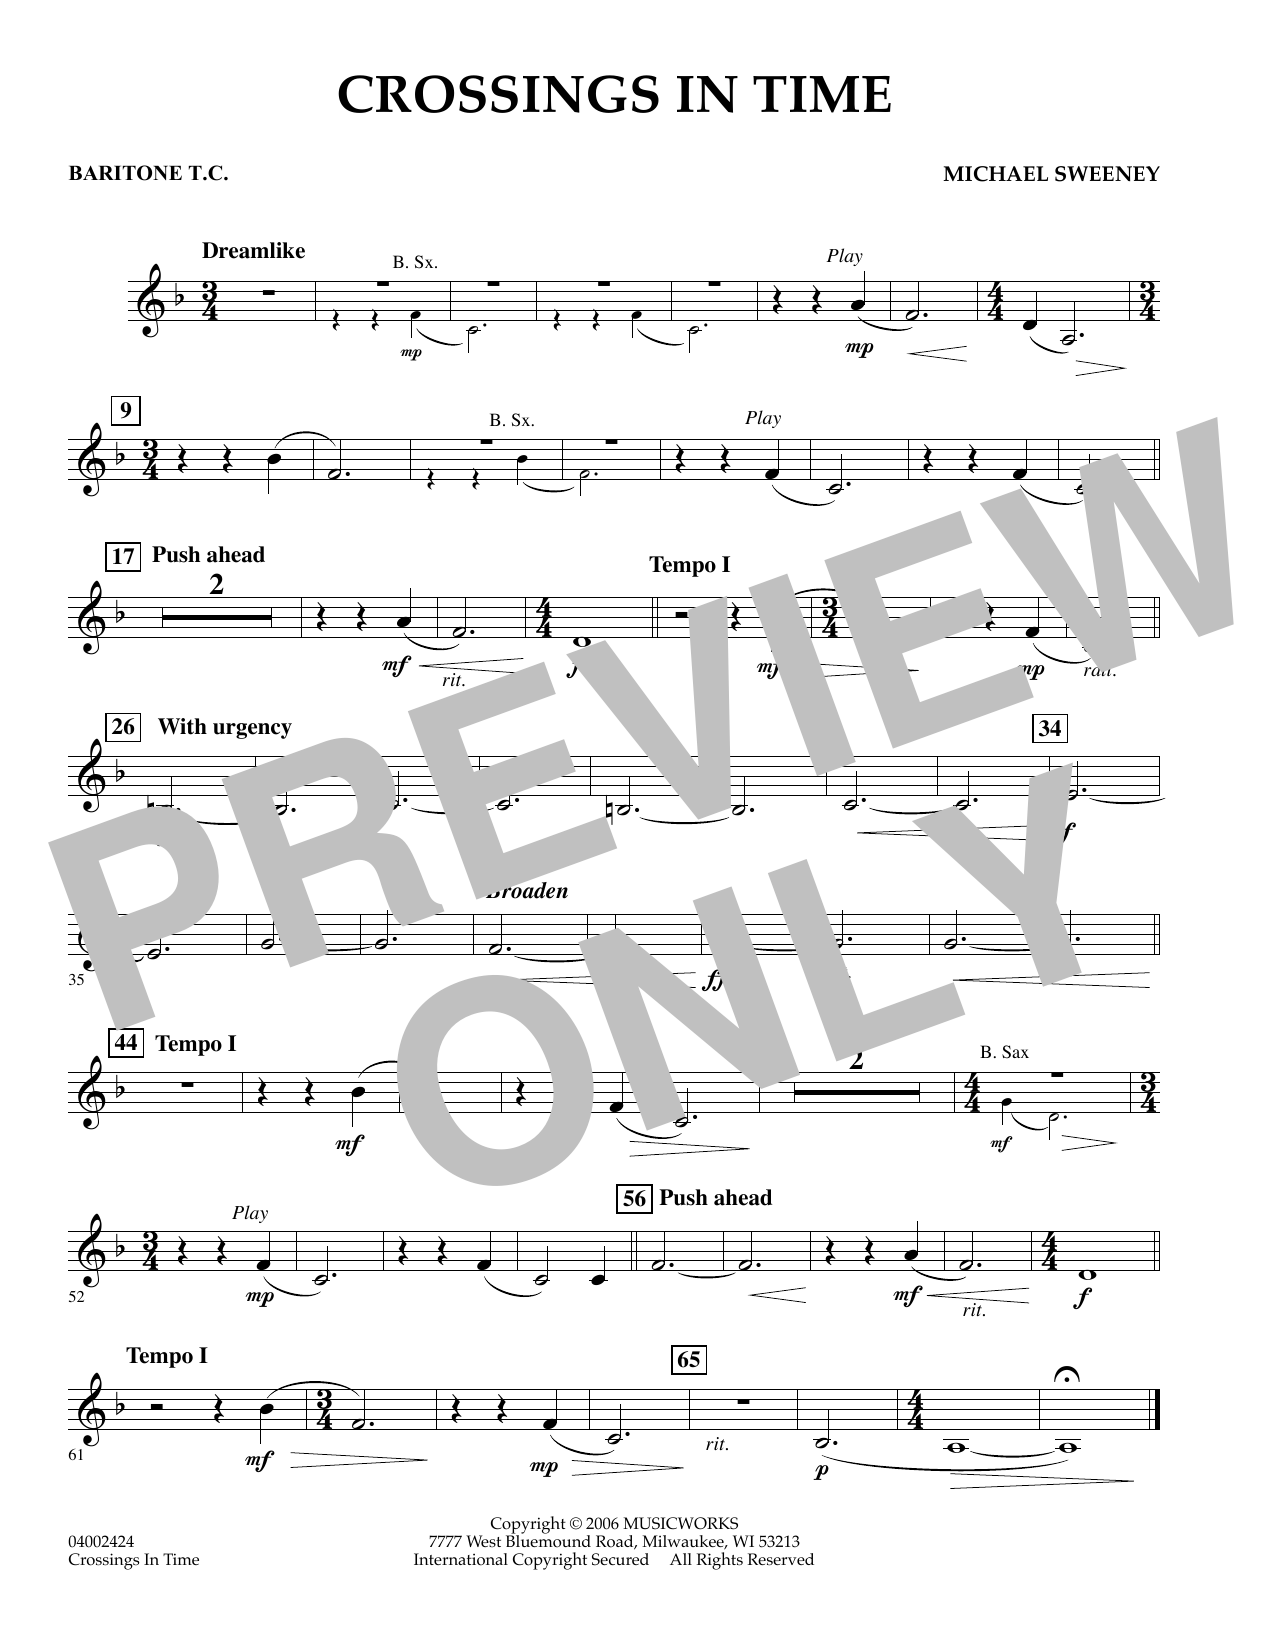 Michael Sweeney Crossings In Time - Baritone T.C. sheet music preview music notes and score for Concert Band including 1 page(s)